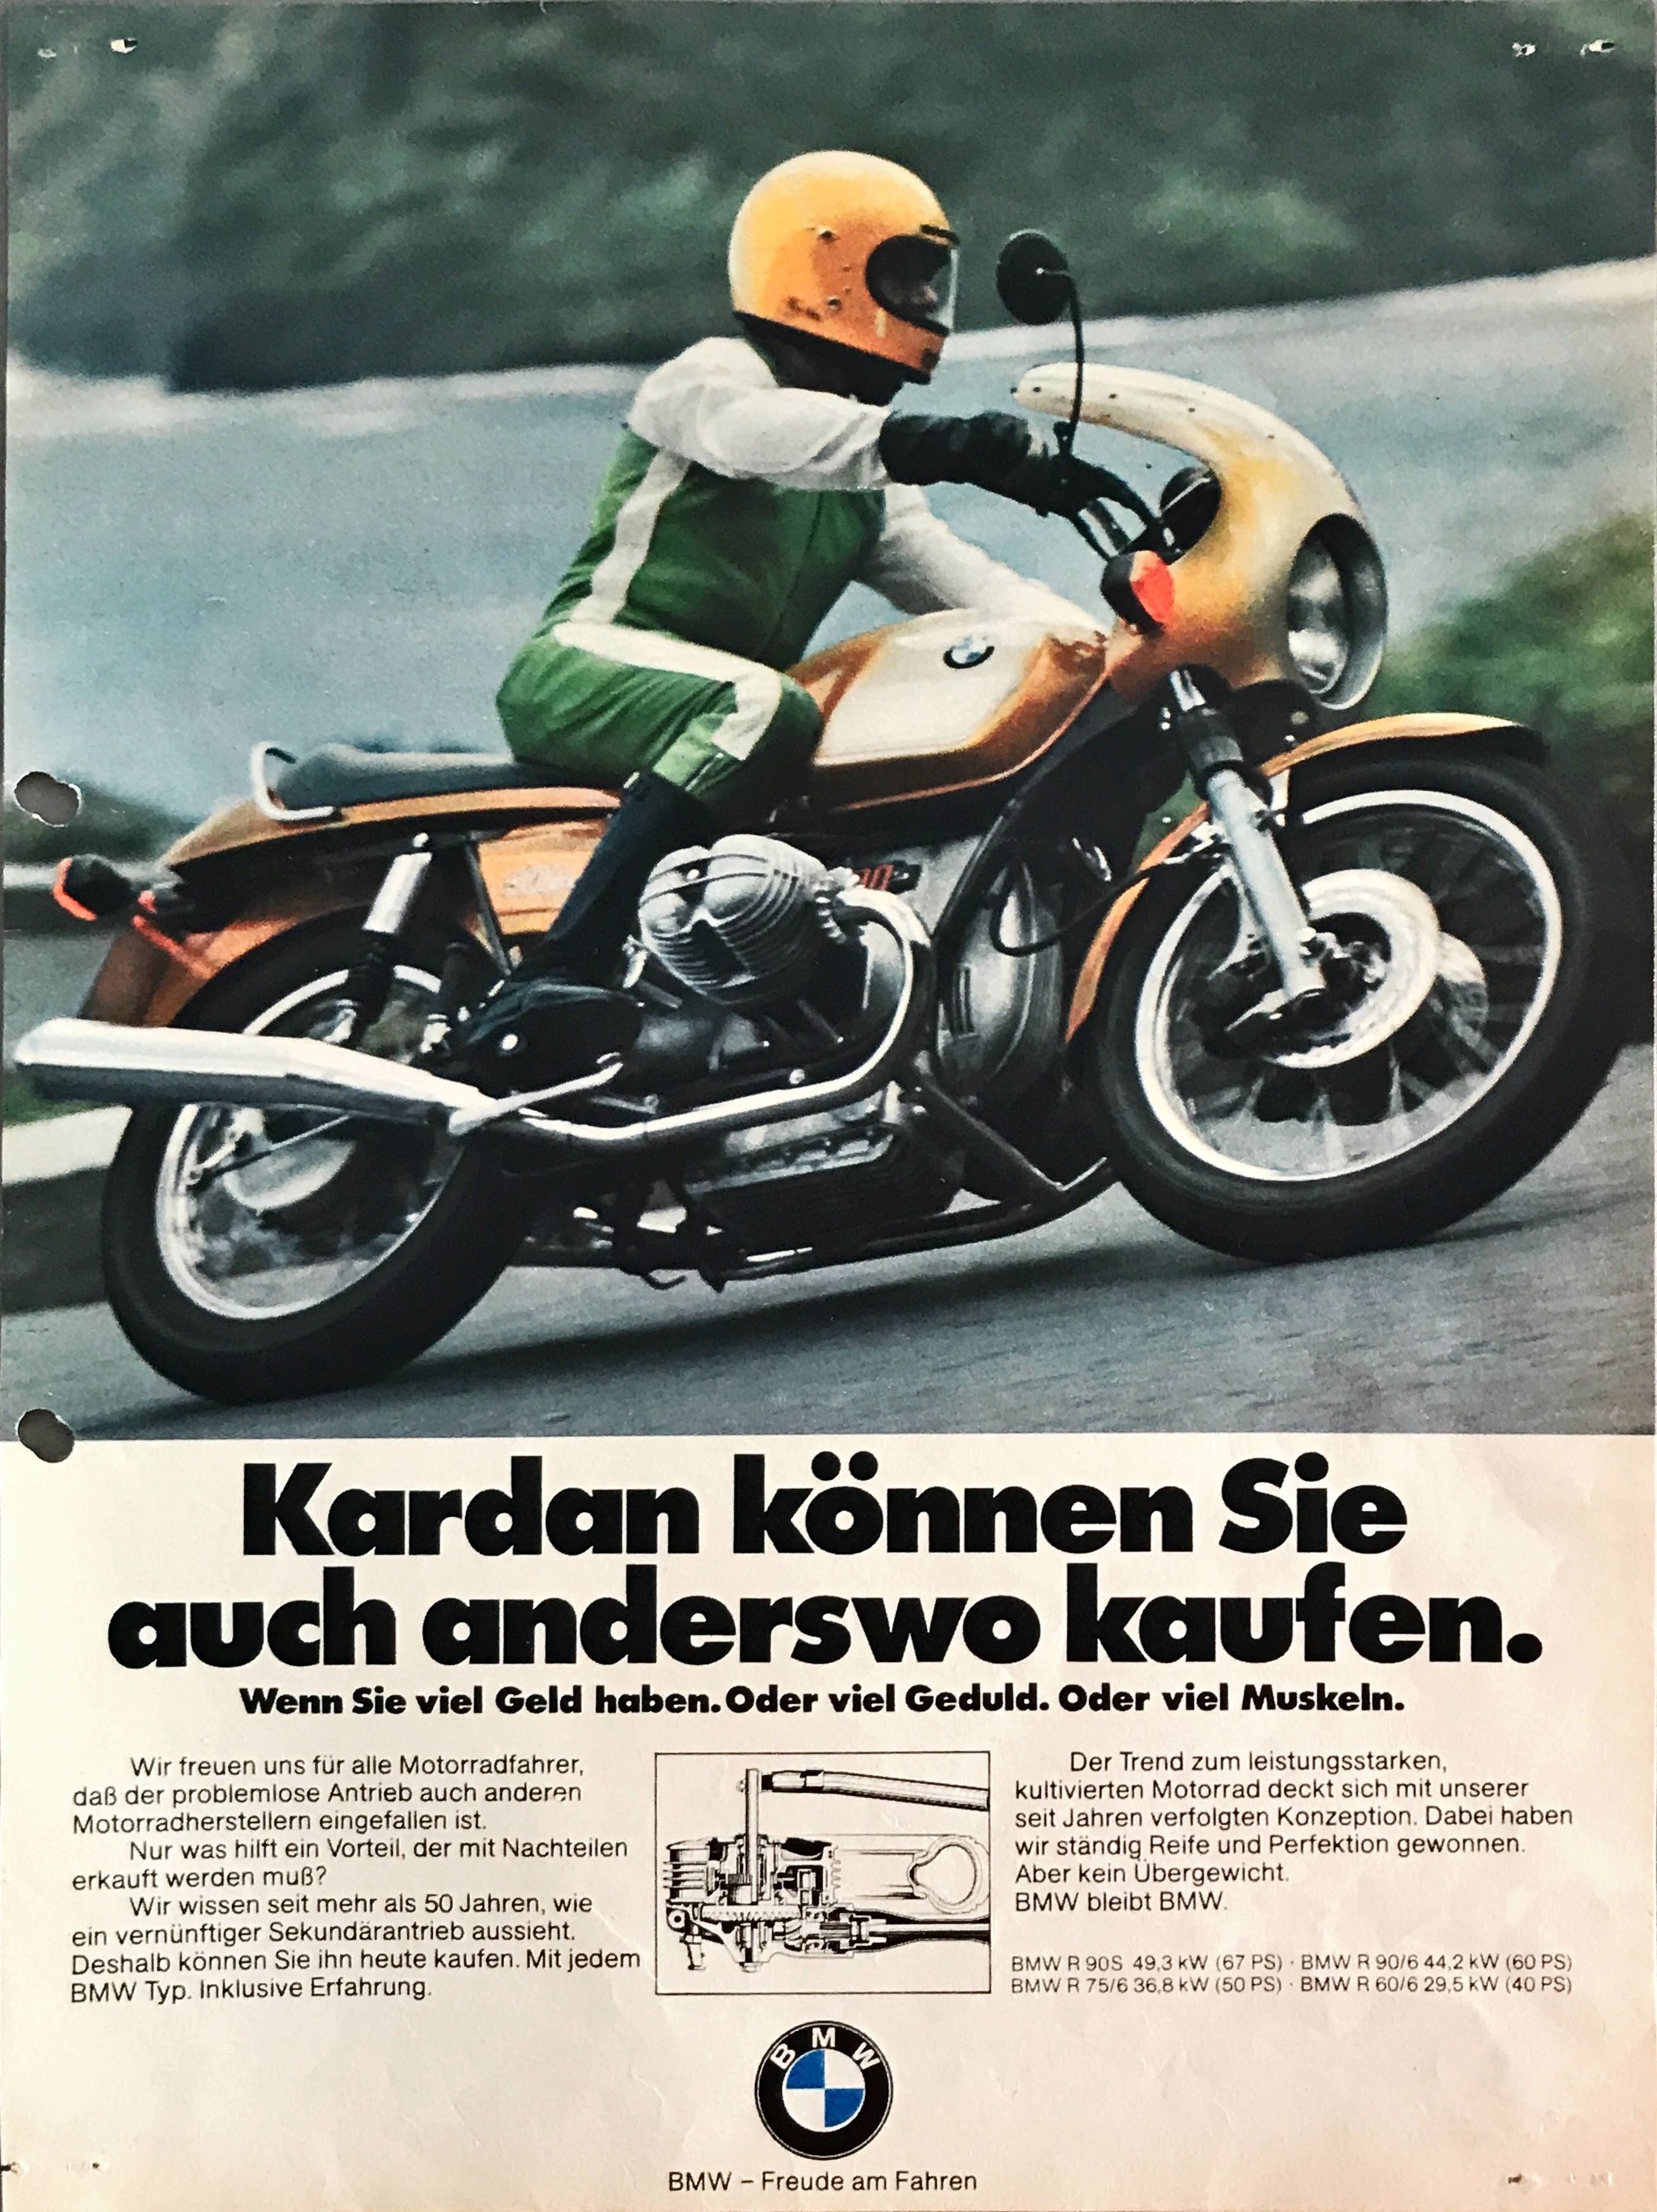 Pin By Leiwis Kinnin On Motorcycles Pinterest Bmw Motorcycles